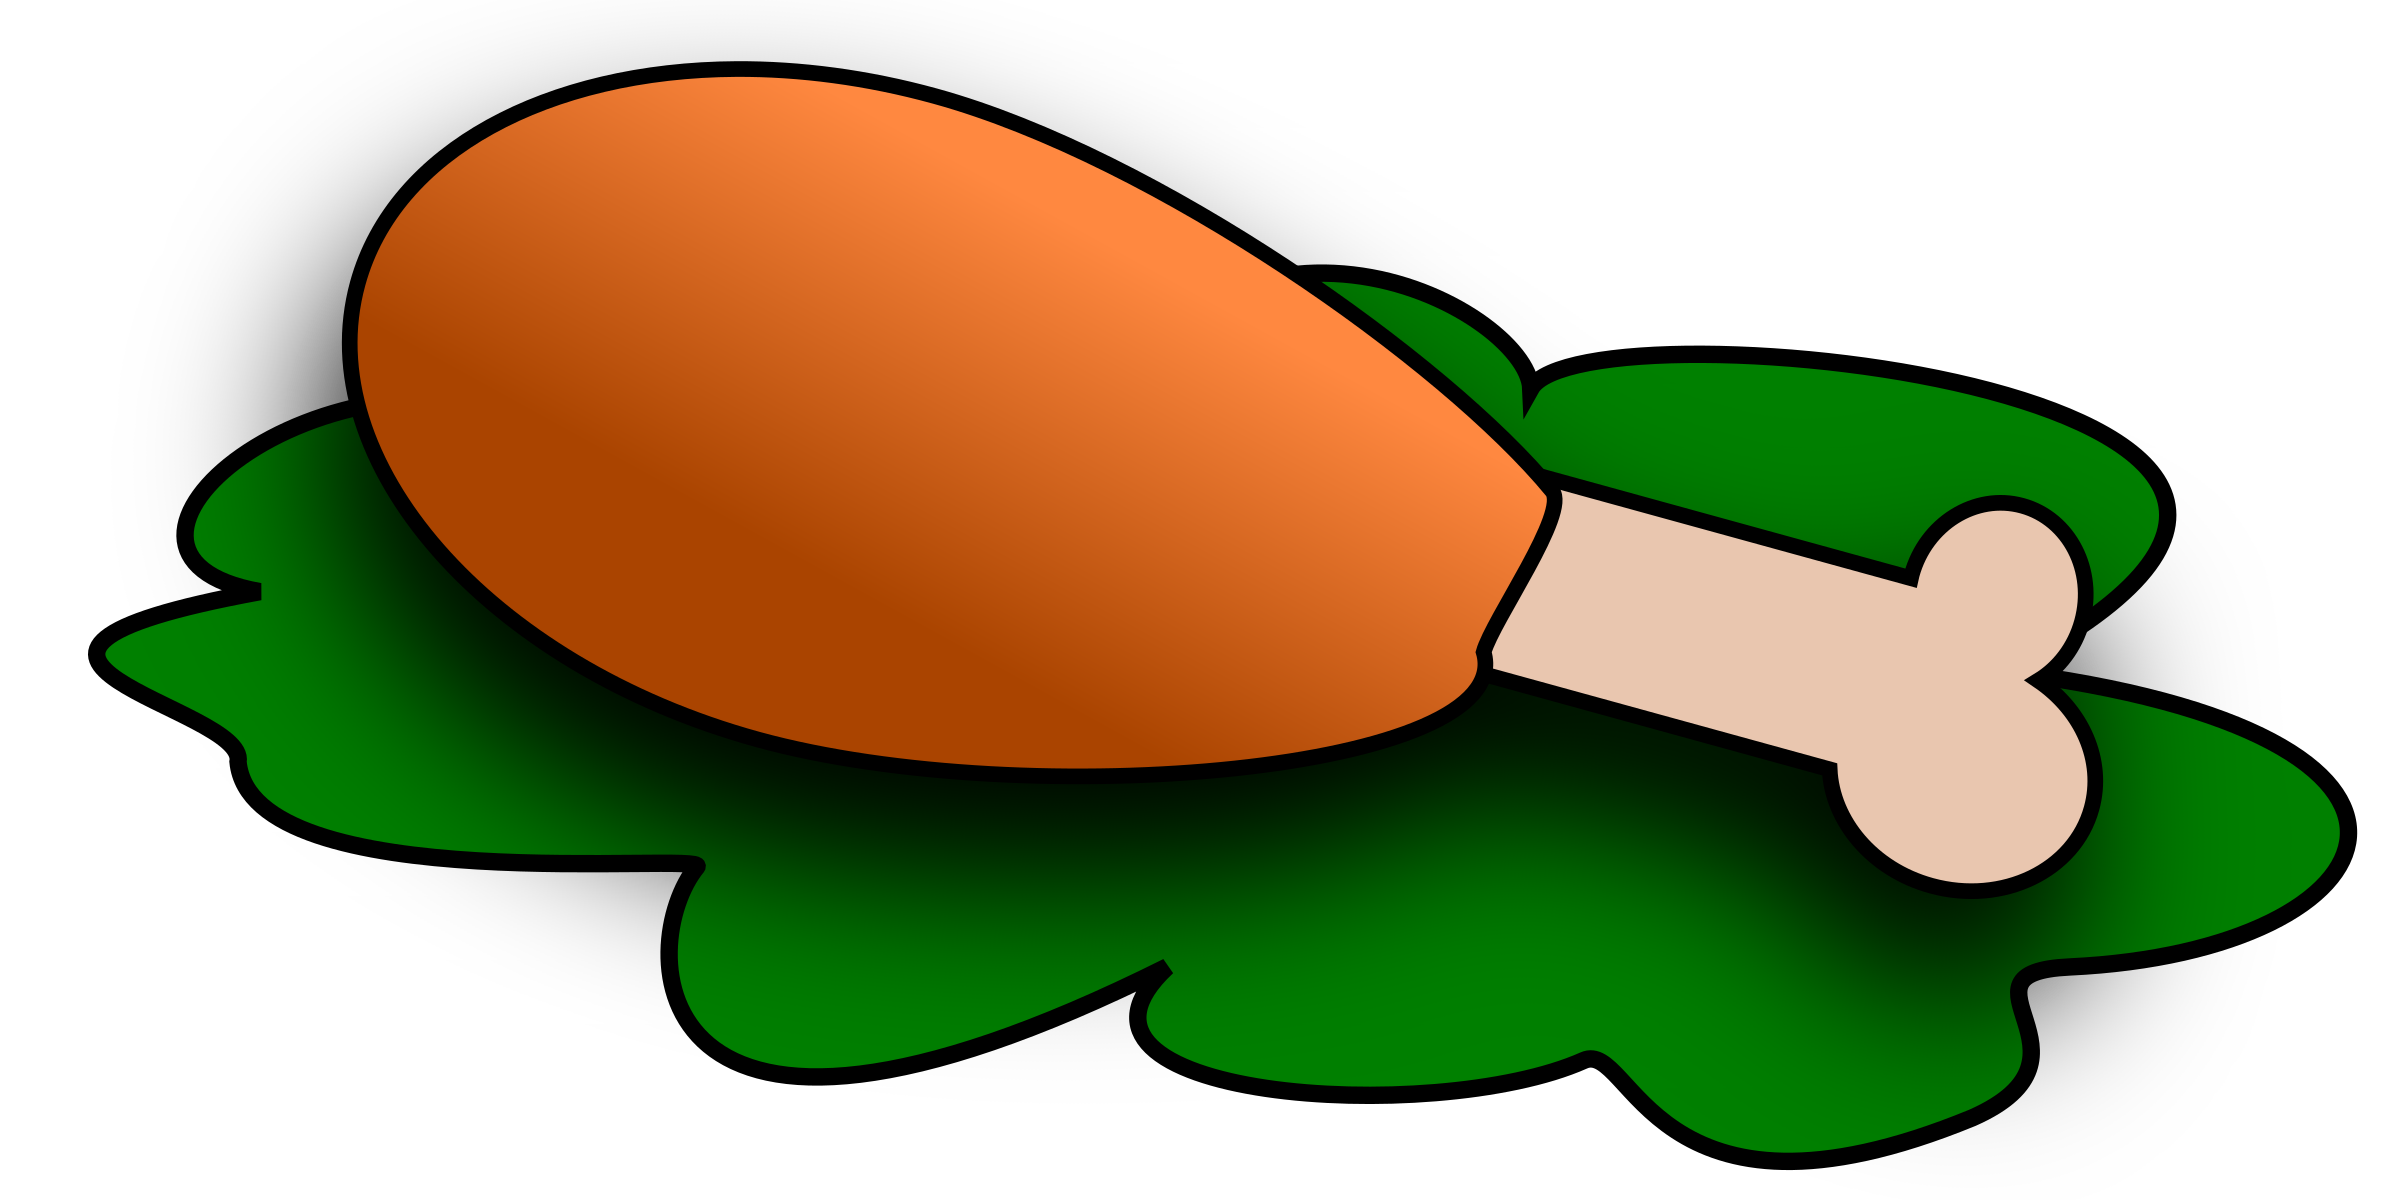 image transparent download Meat clipart food. Icon big image png.